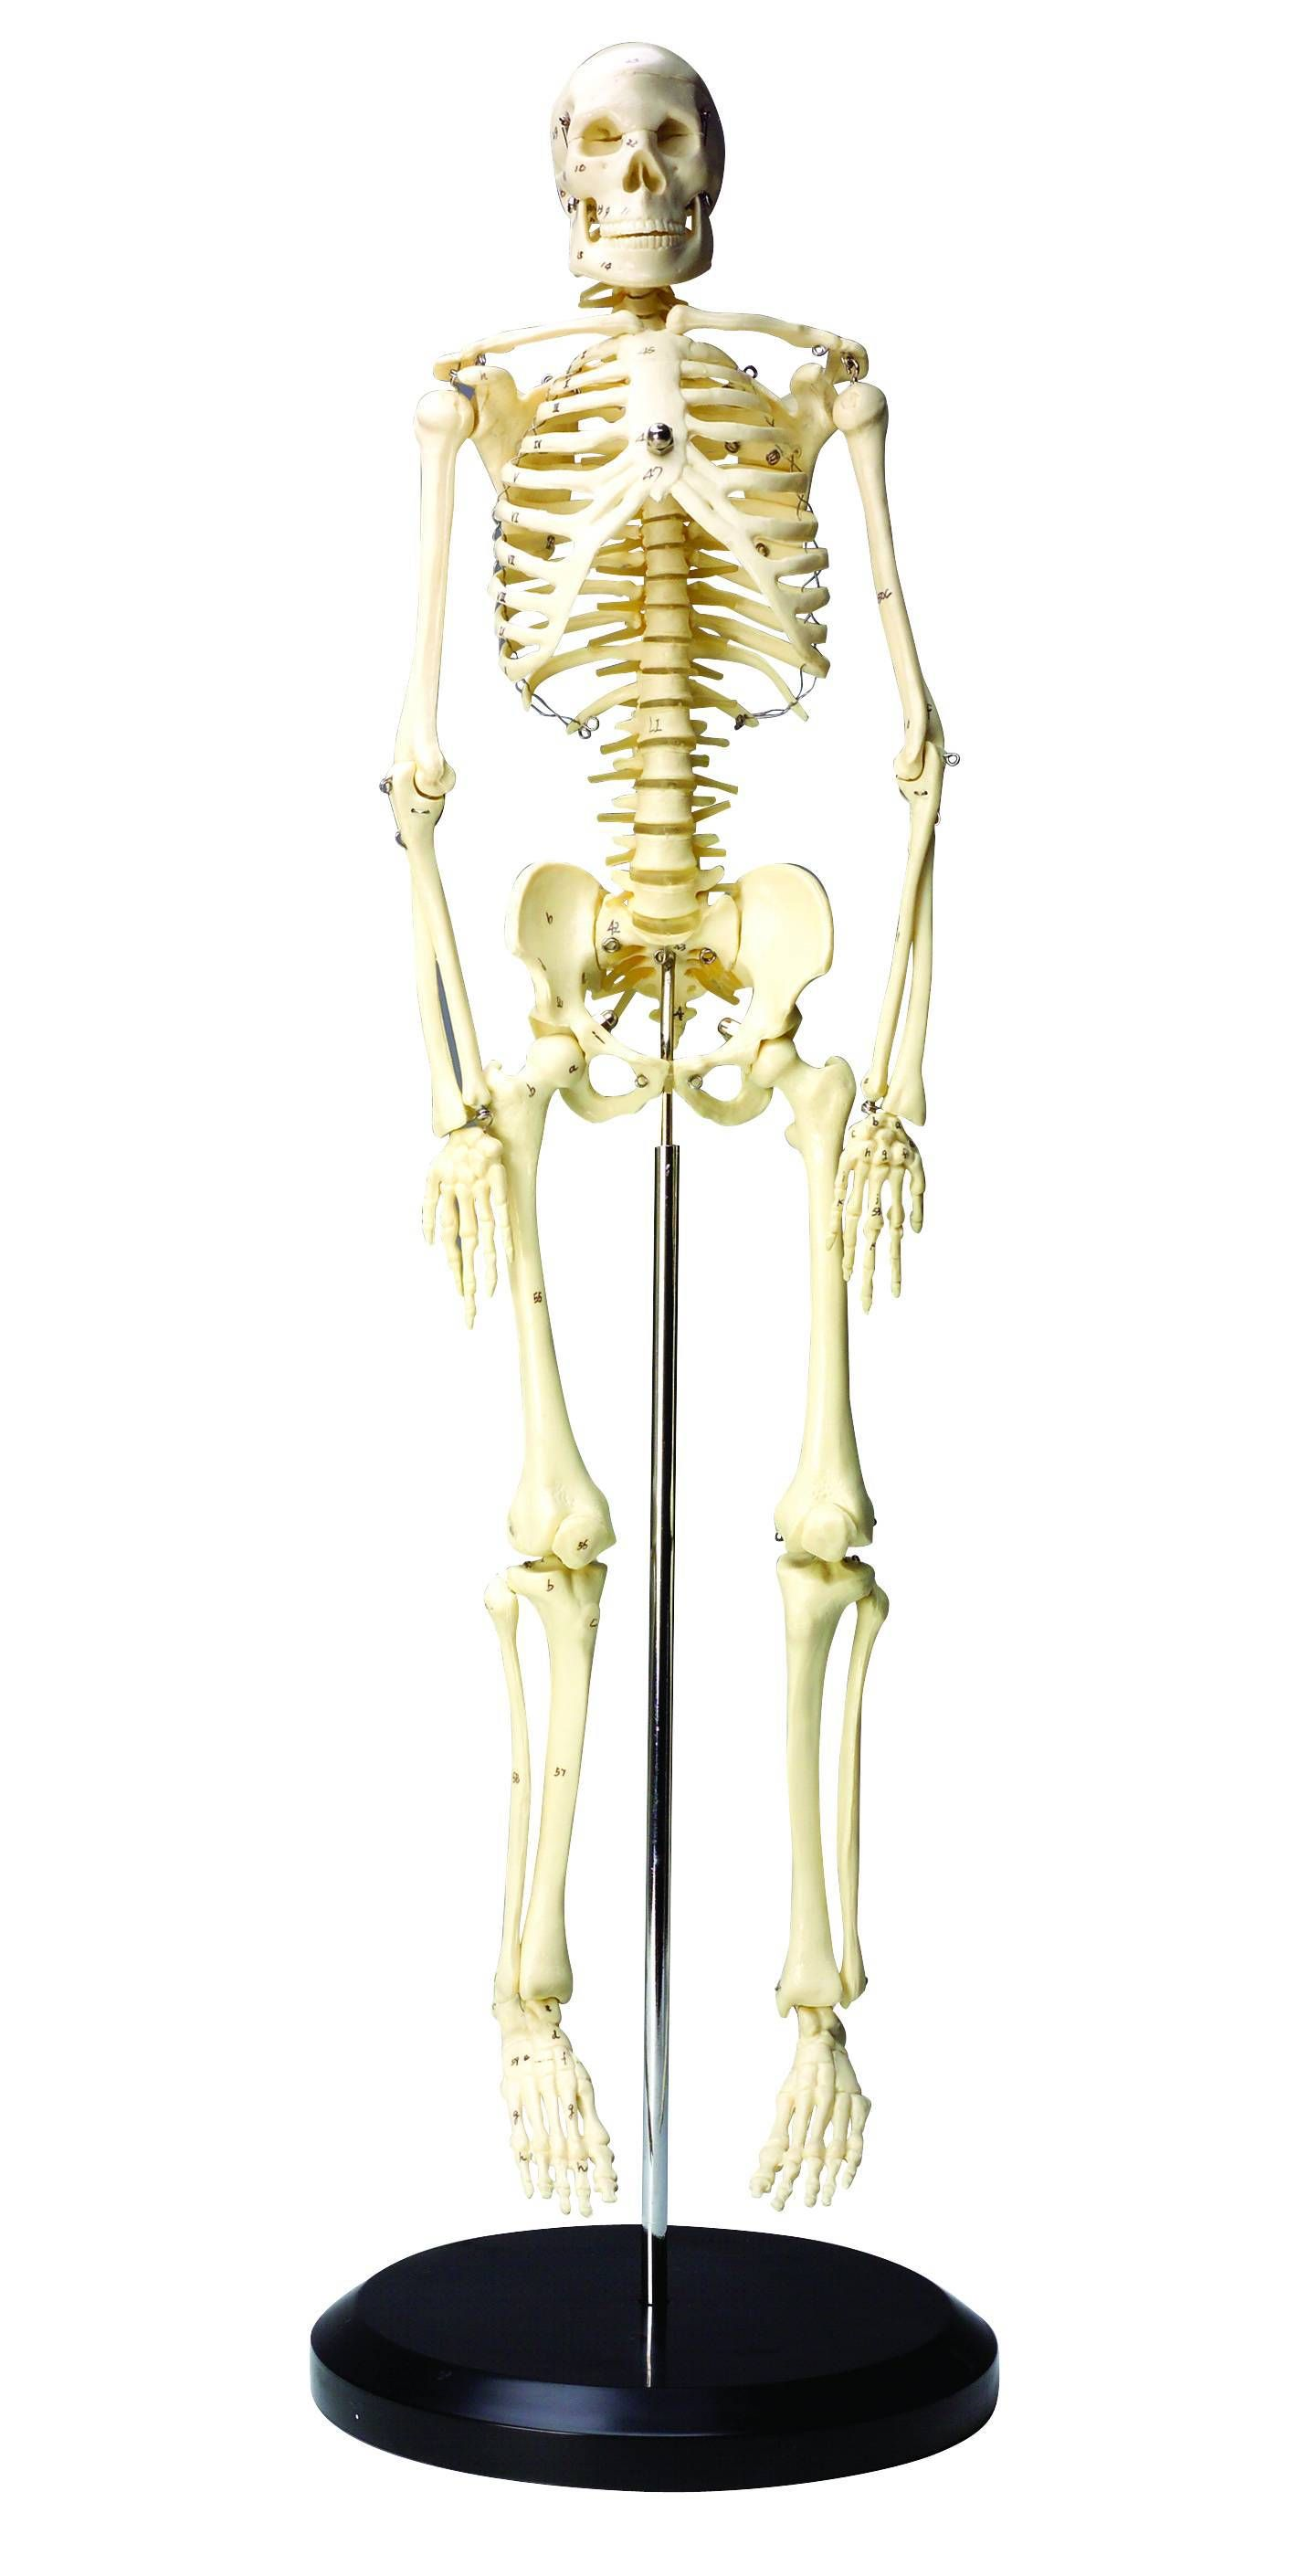 Educational Insights Numbered Parts Human Skeleton Model